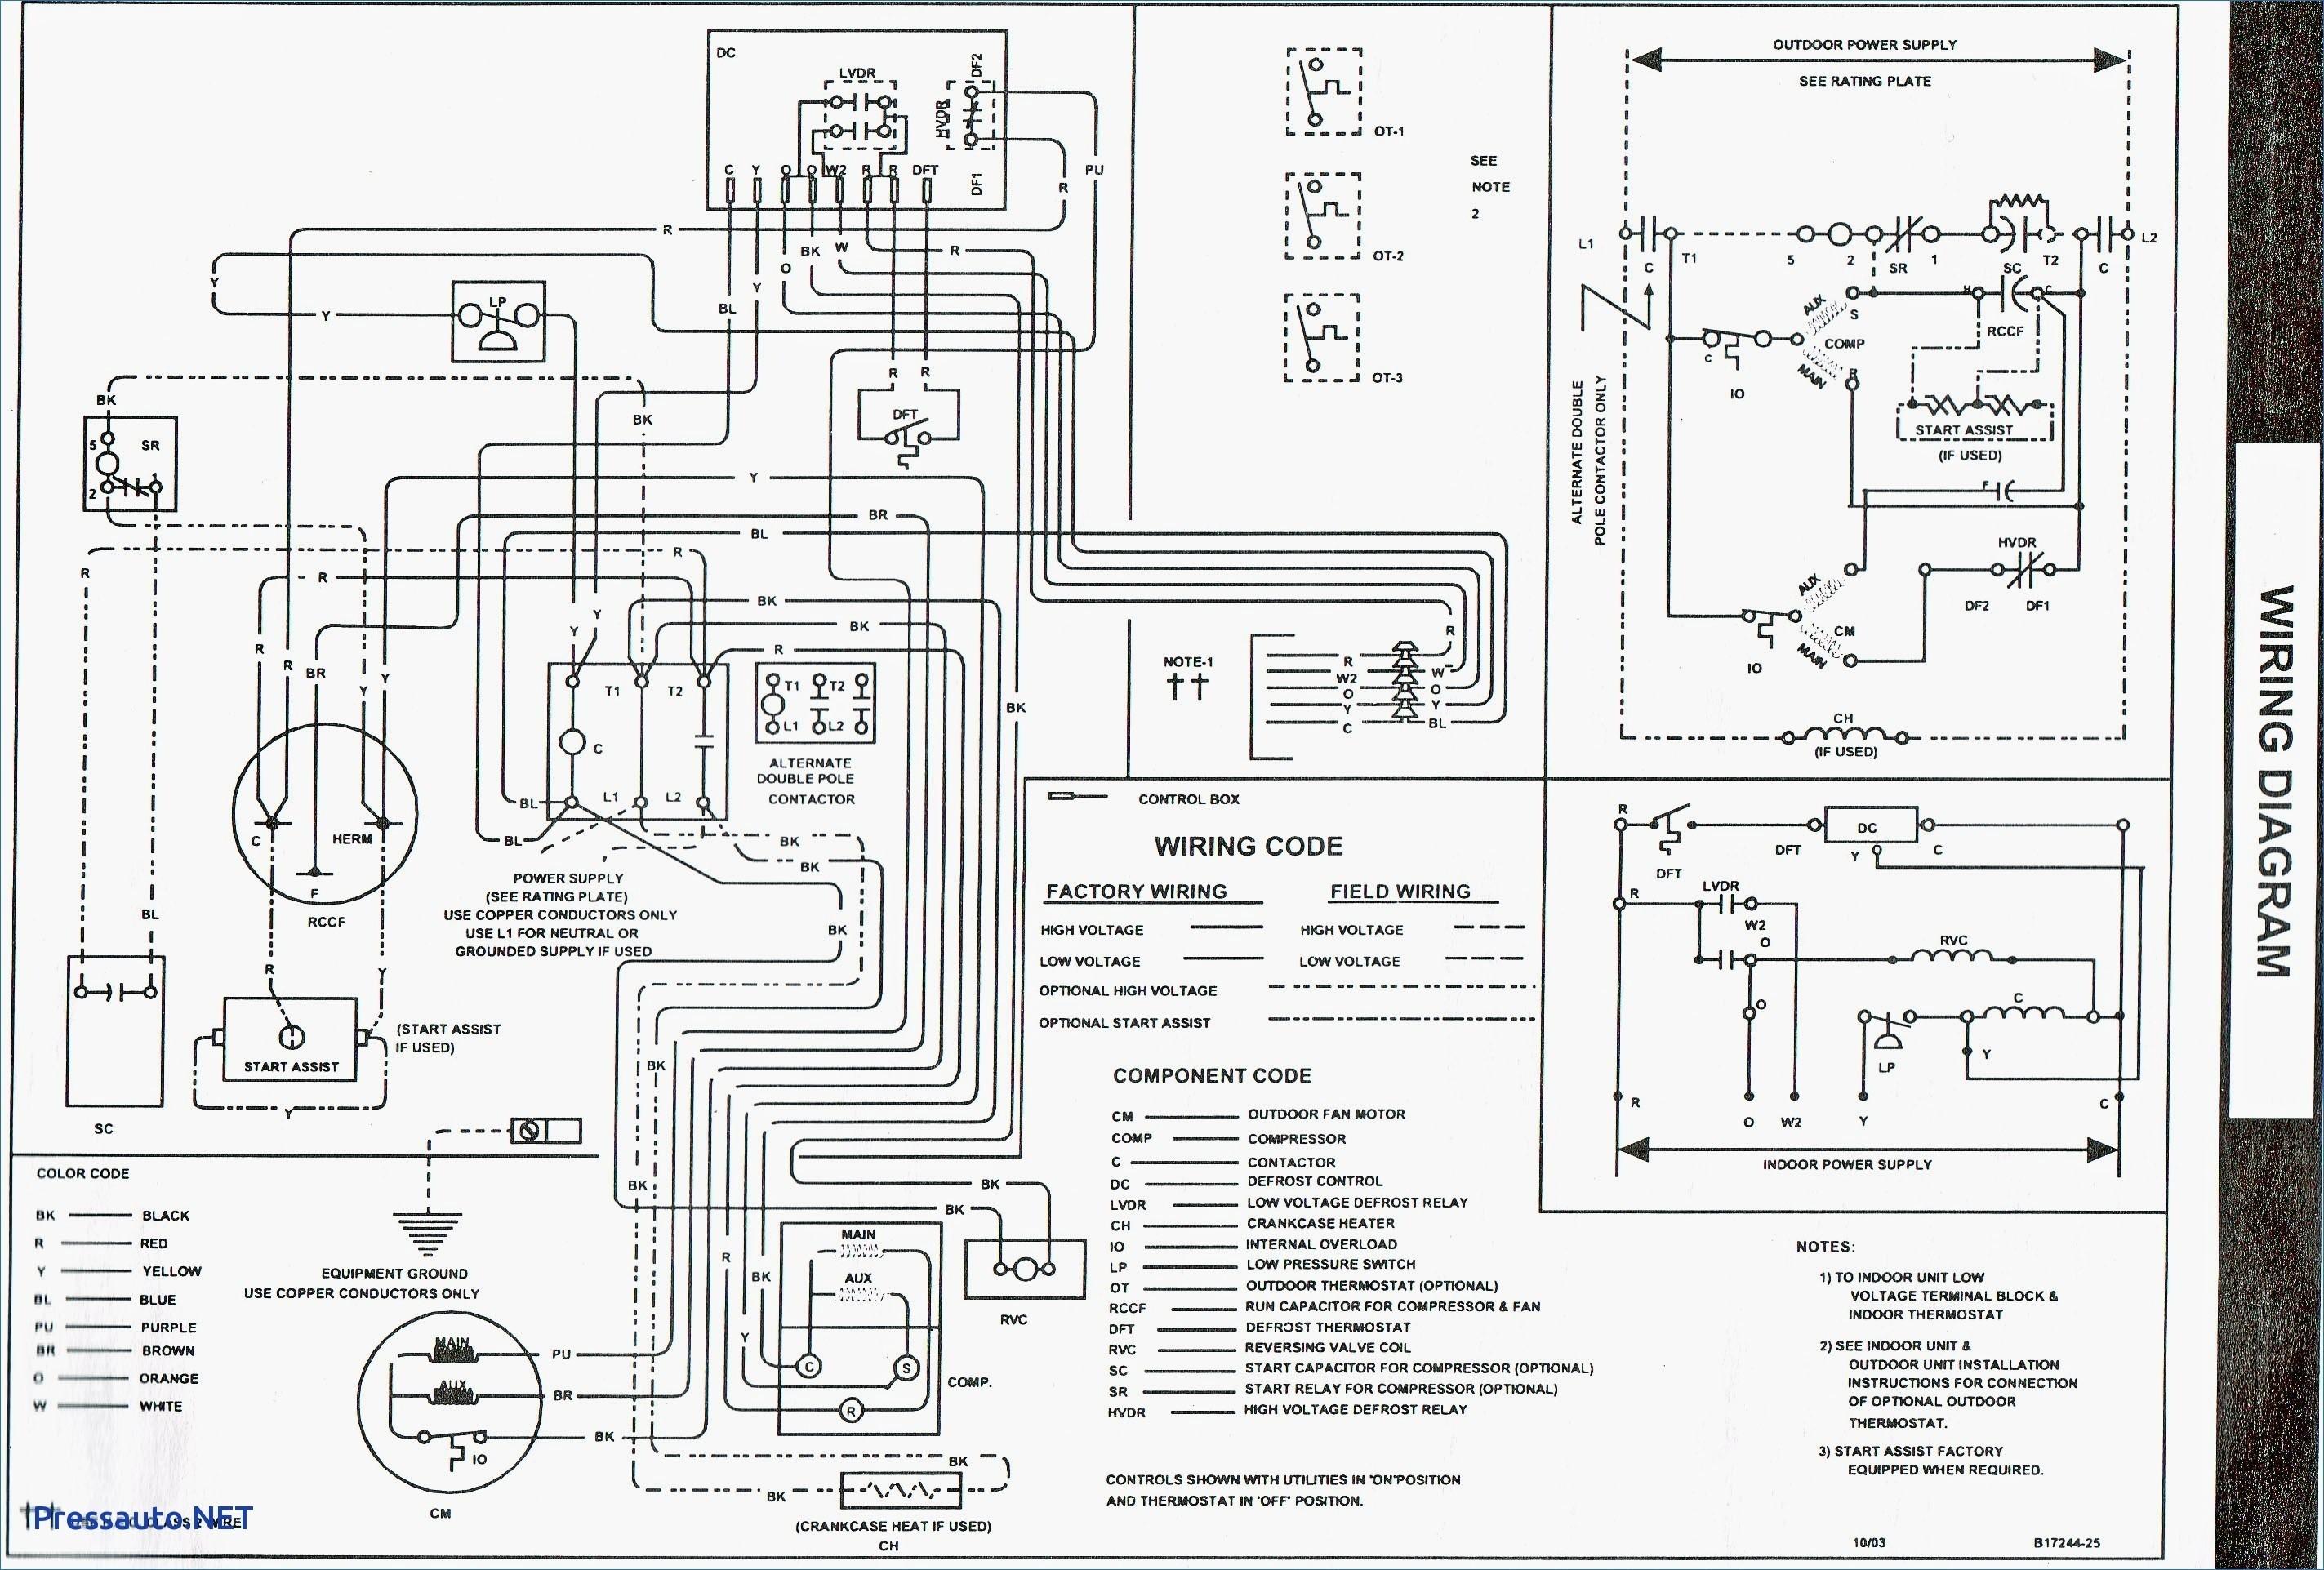 York Electric Furnace Wiring Diagram Valid Goodman Air Handler Wiring Diagram Best Wiring York Diagram